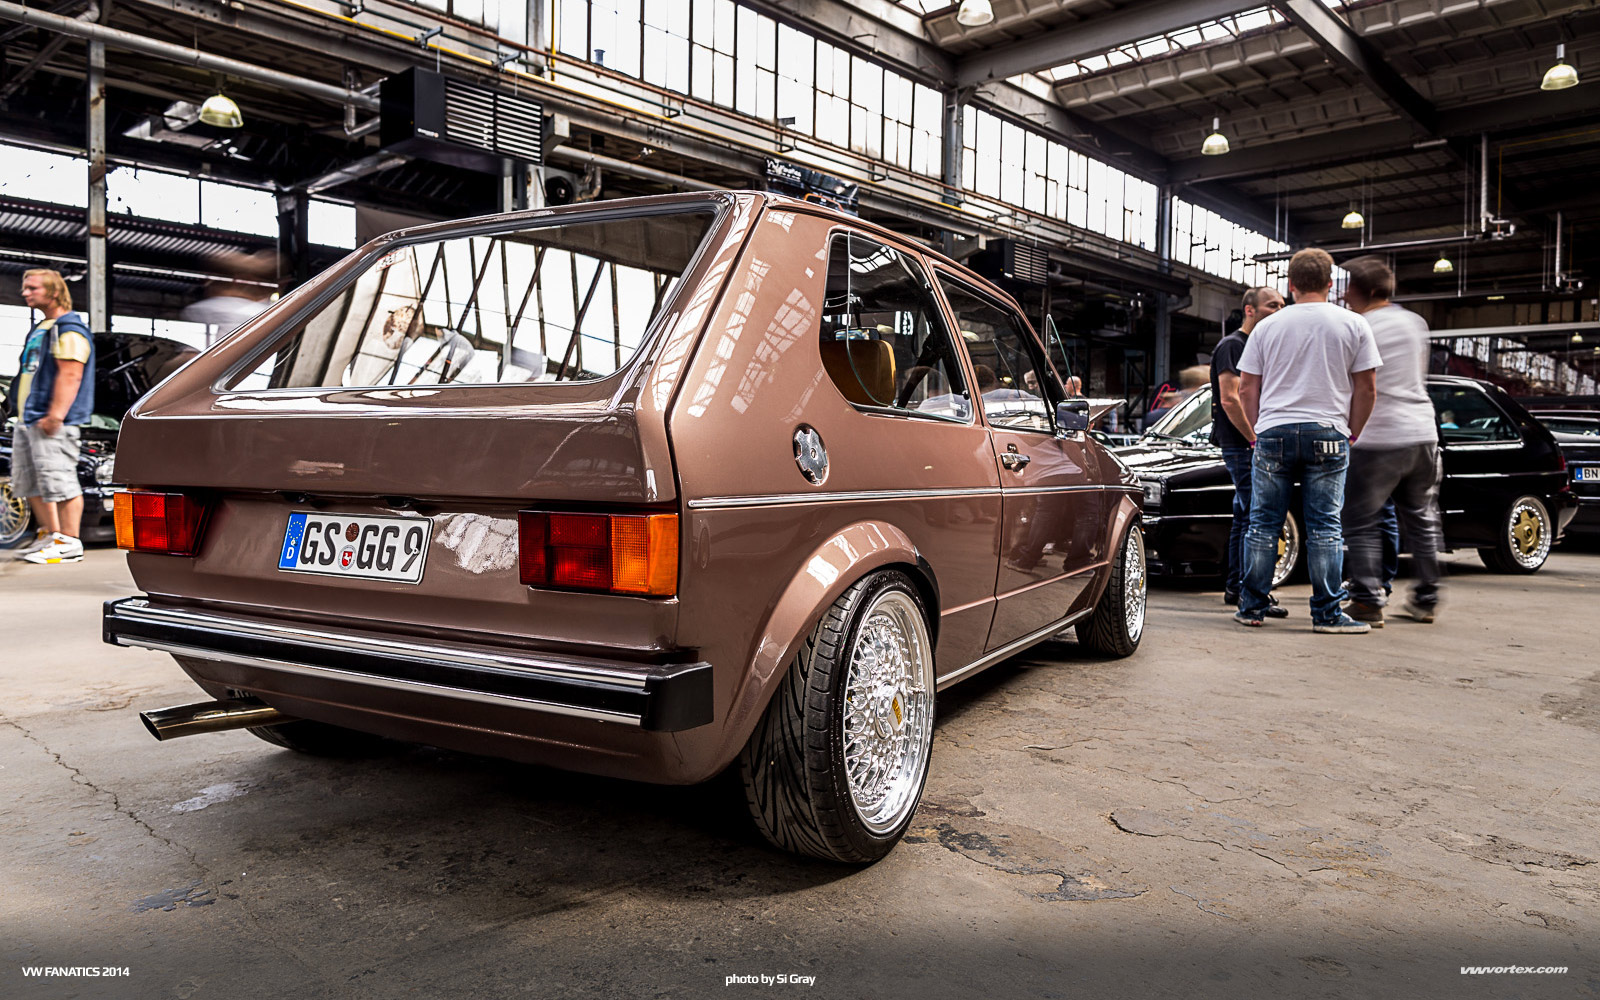 VWFanatics-2014-Si-Gray-399